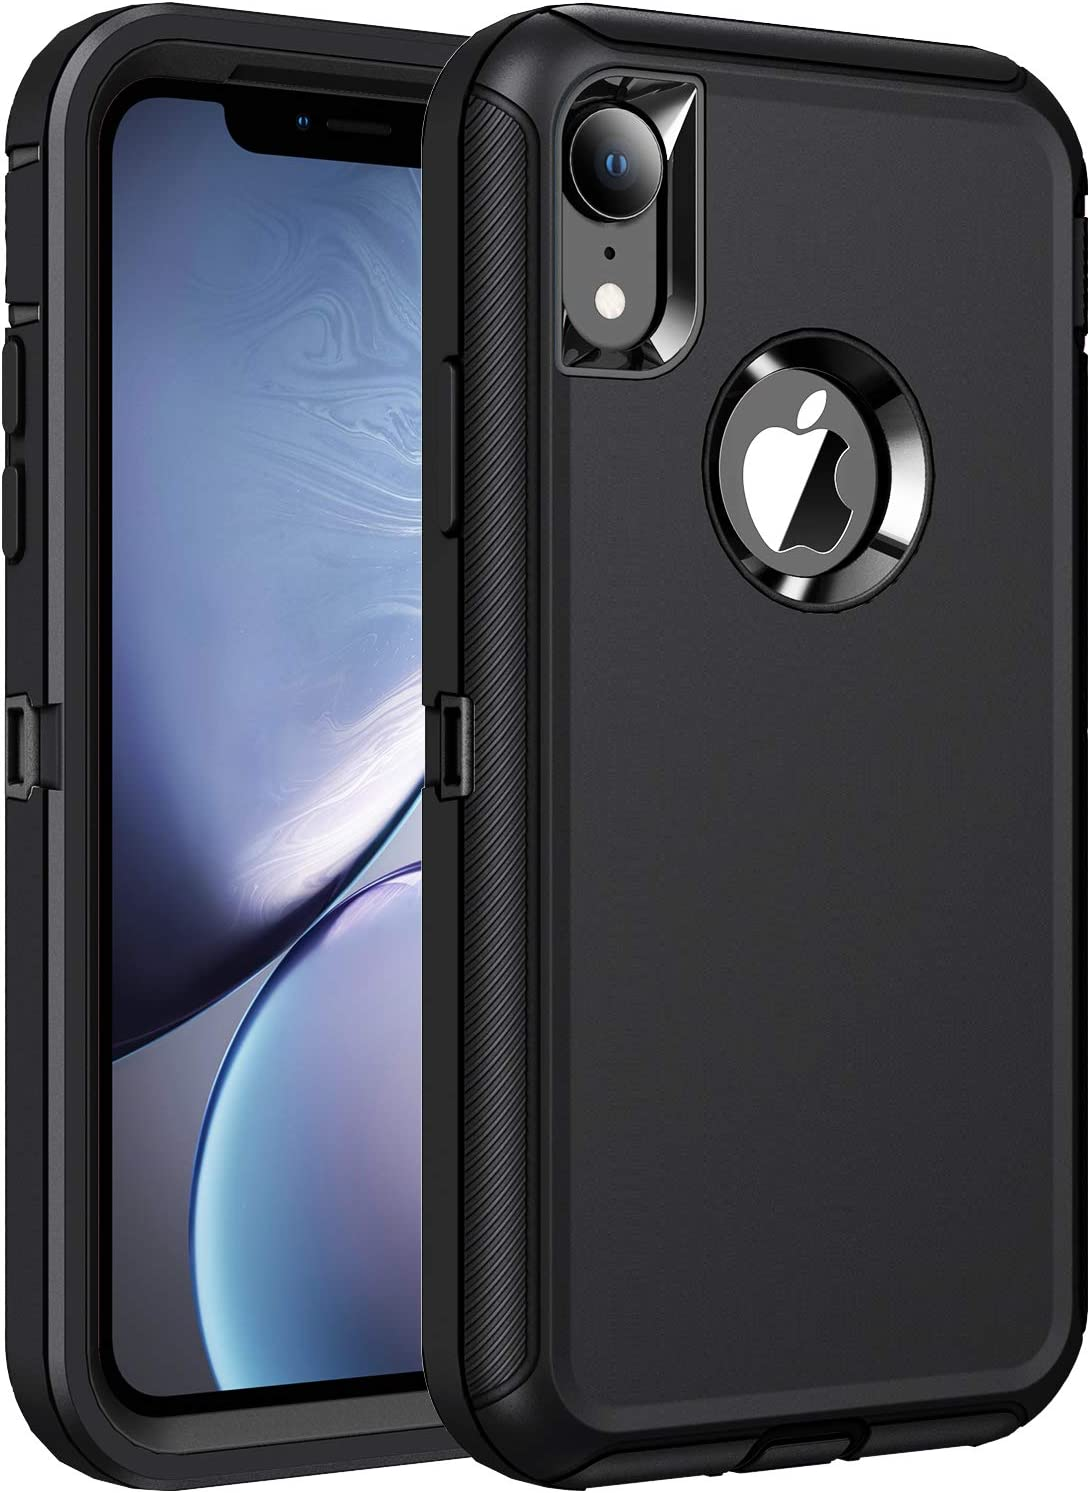 RegSun for iPhone XR Case,Shockproof 3-Layer Full Body Protection [Without Screen Protector] Rugged Heavy Duty High Impact Hard Cover Case for iPhone XR 6.1-inch,Black